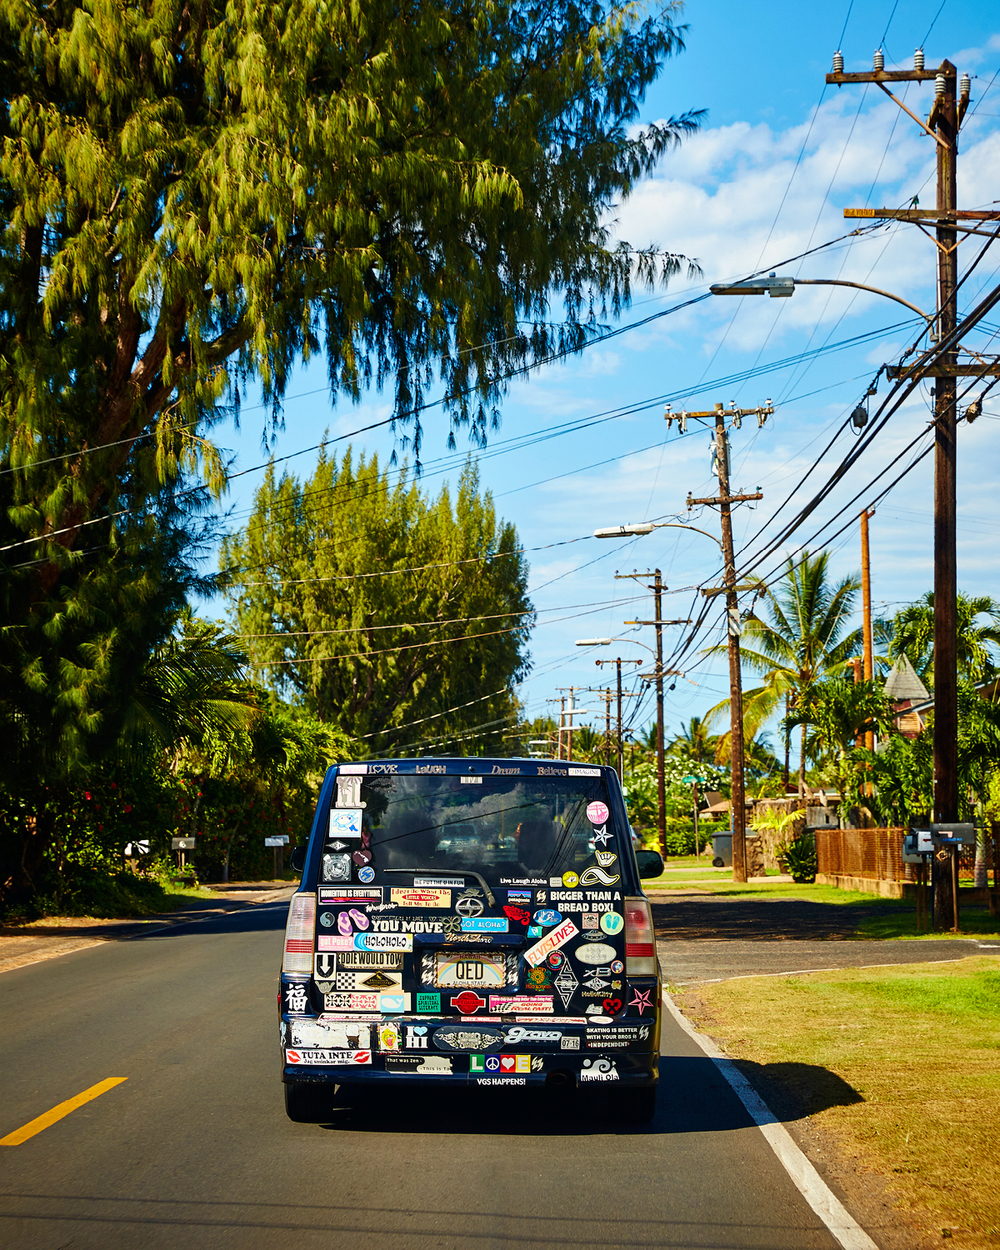 BUMPER STICKER ENVY